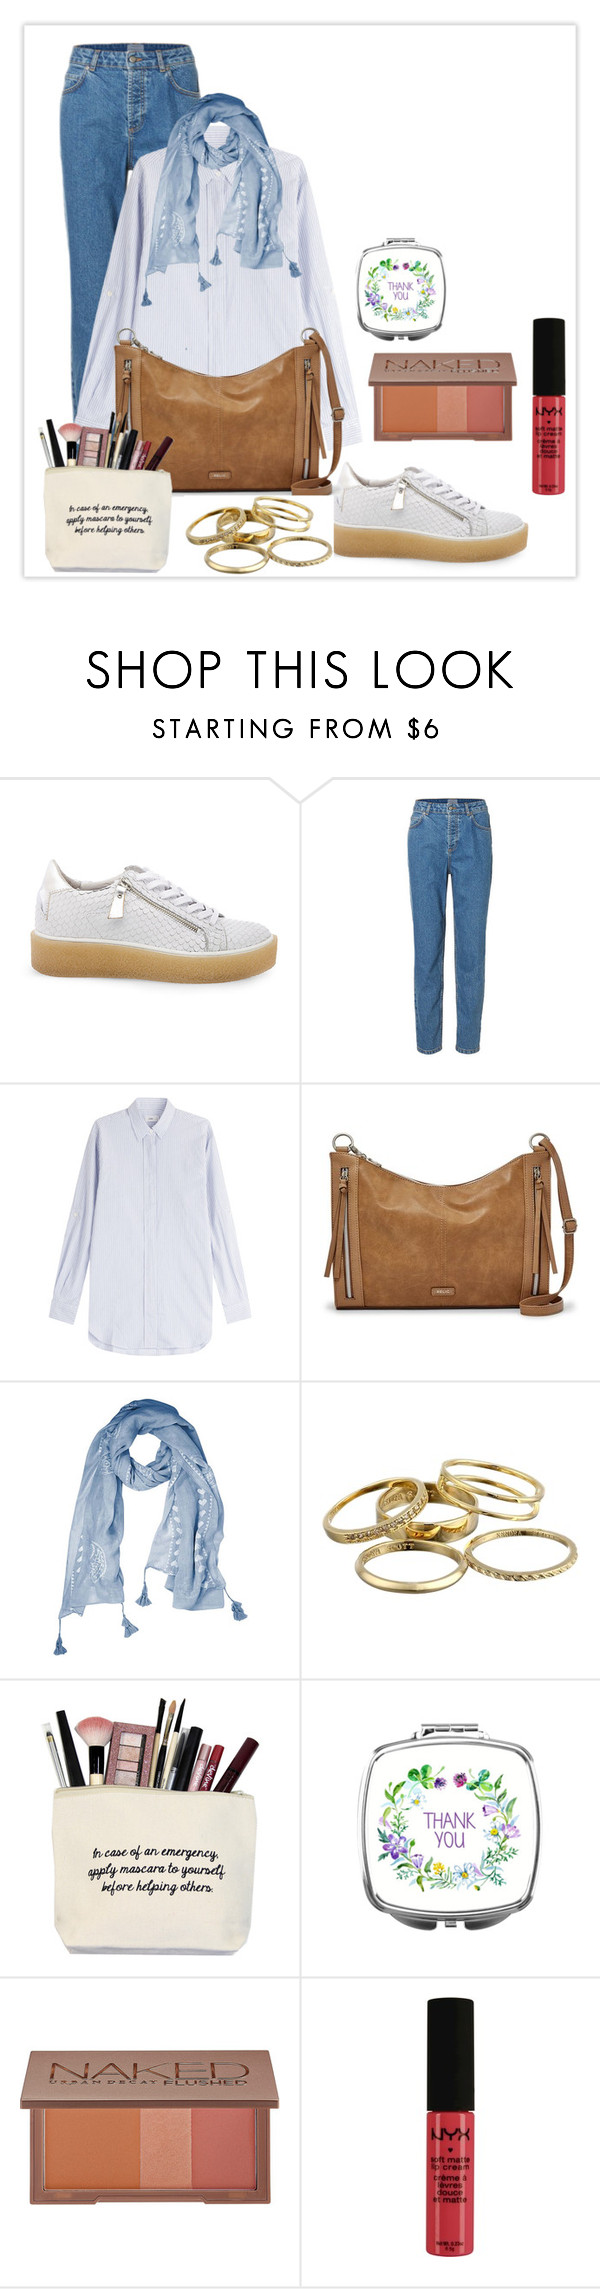 """""""B e t w e e n"""" by haranata ❤ liked on Polyvore featuring Steve Madden, Closed, Relic, Kendra Scott, Urban Decay, NYX, casual, Blue, stripes and hijab"""